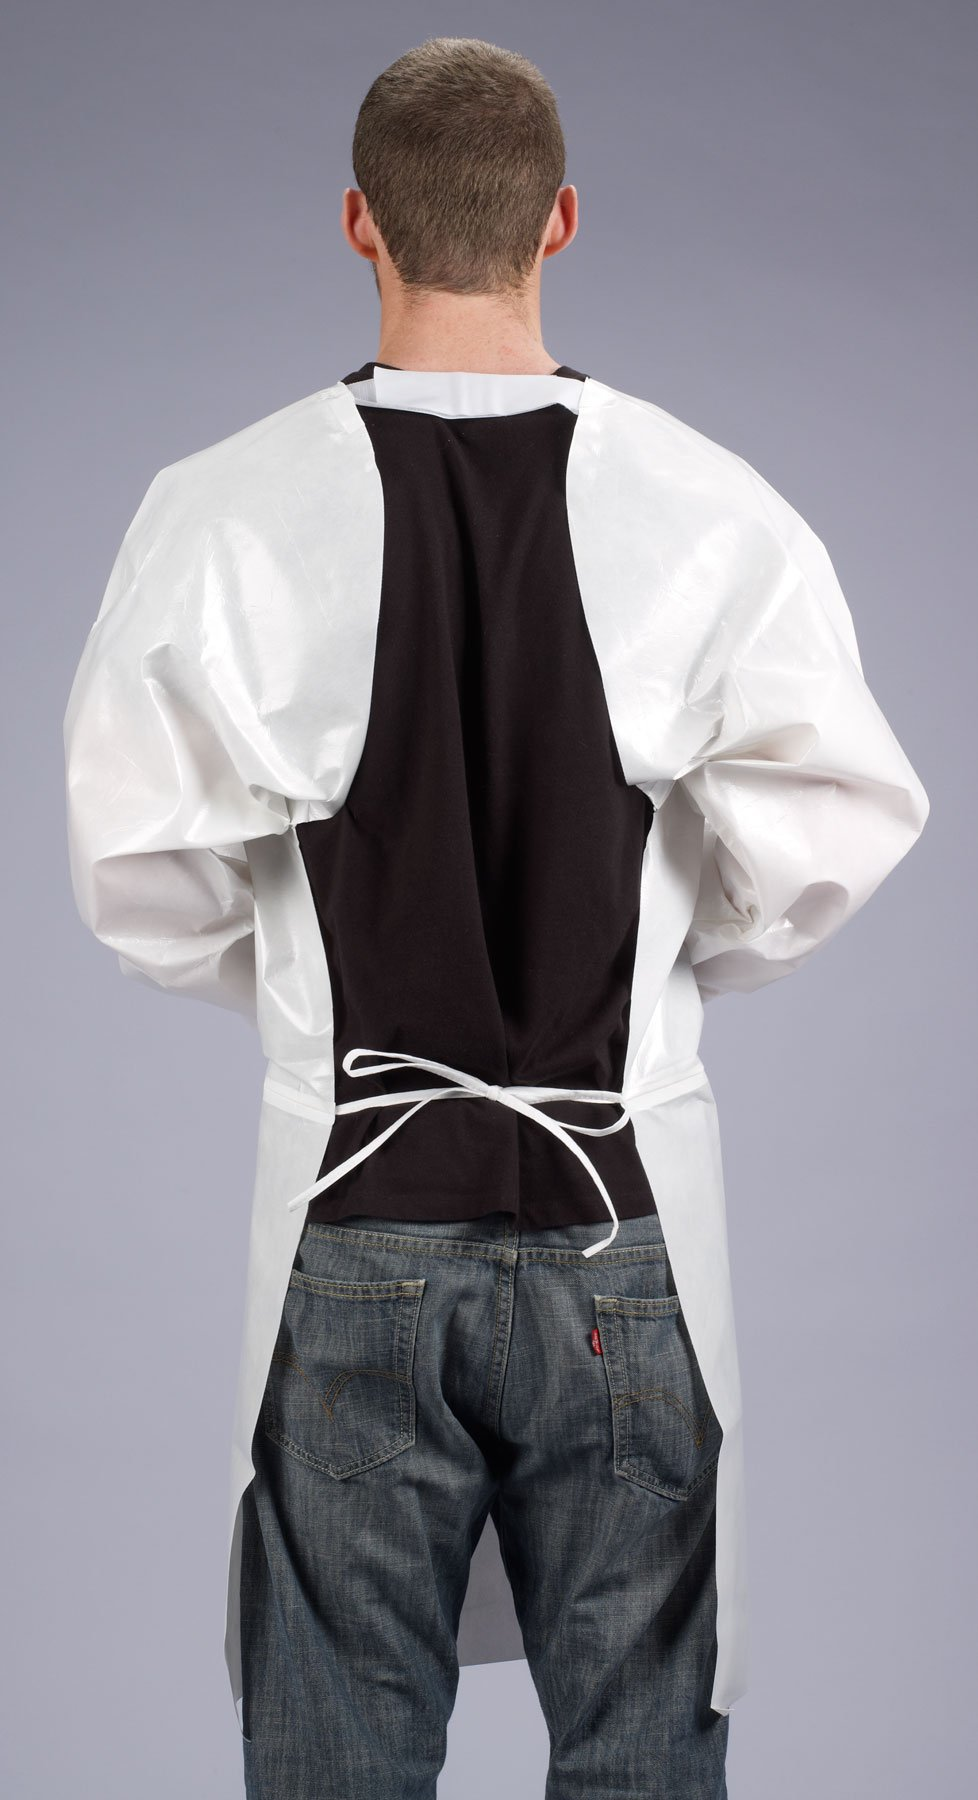 Lakeland ChemMax 2 Taped Seam Long Sleeve Apron, Disposable, Elastic Cuff, 2X-Large, White (Case of 12) by Lakeland Industries Inc (Image #2)